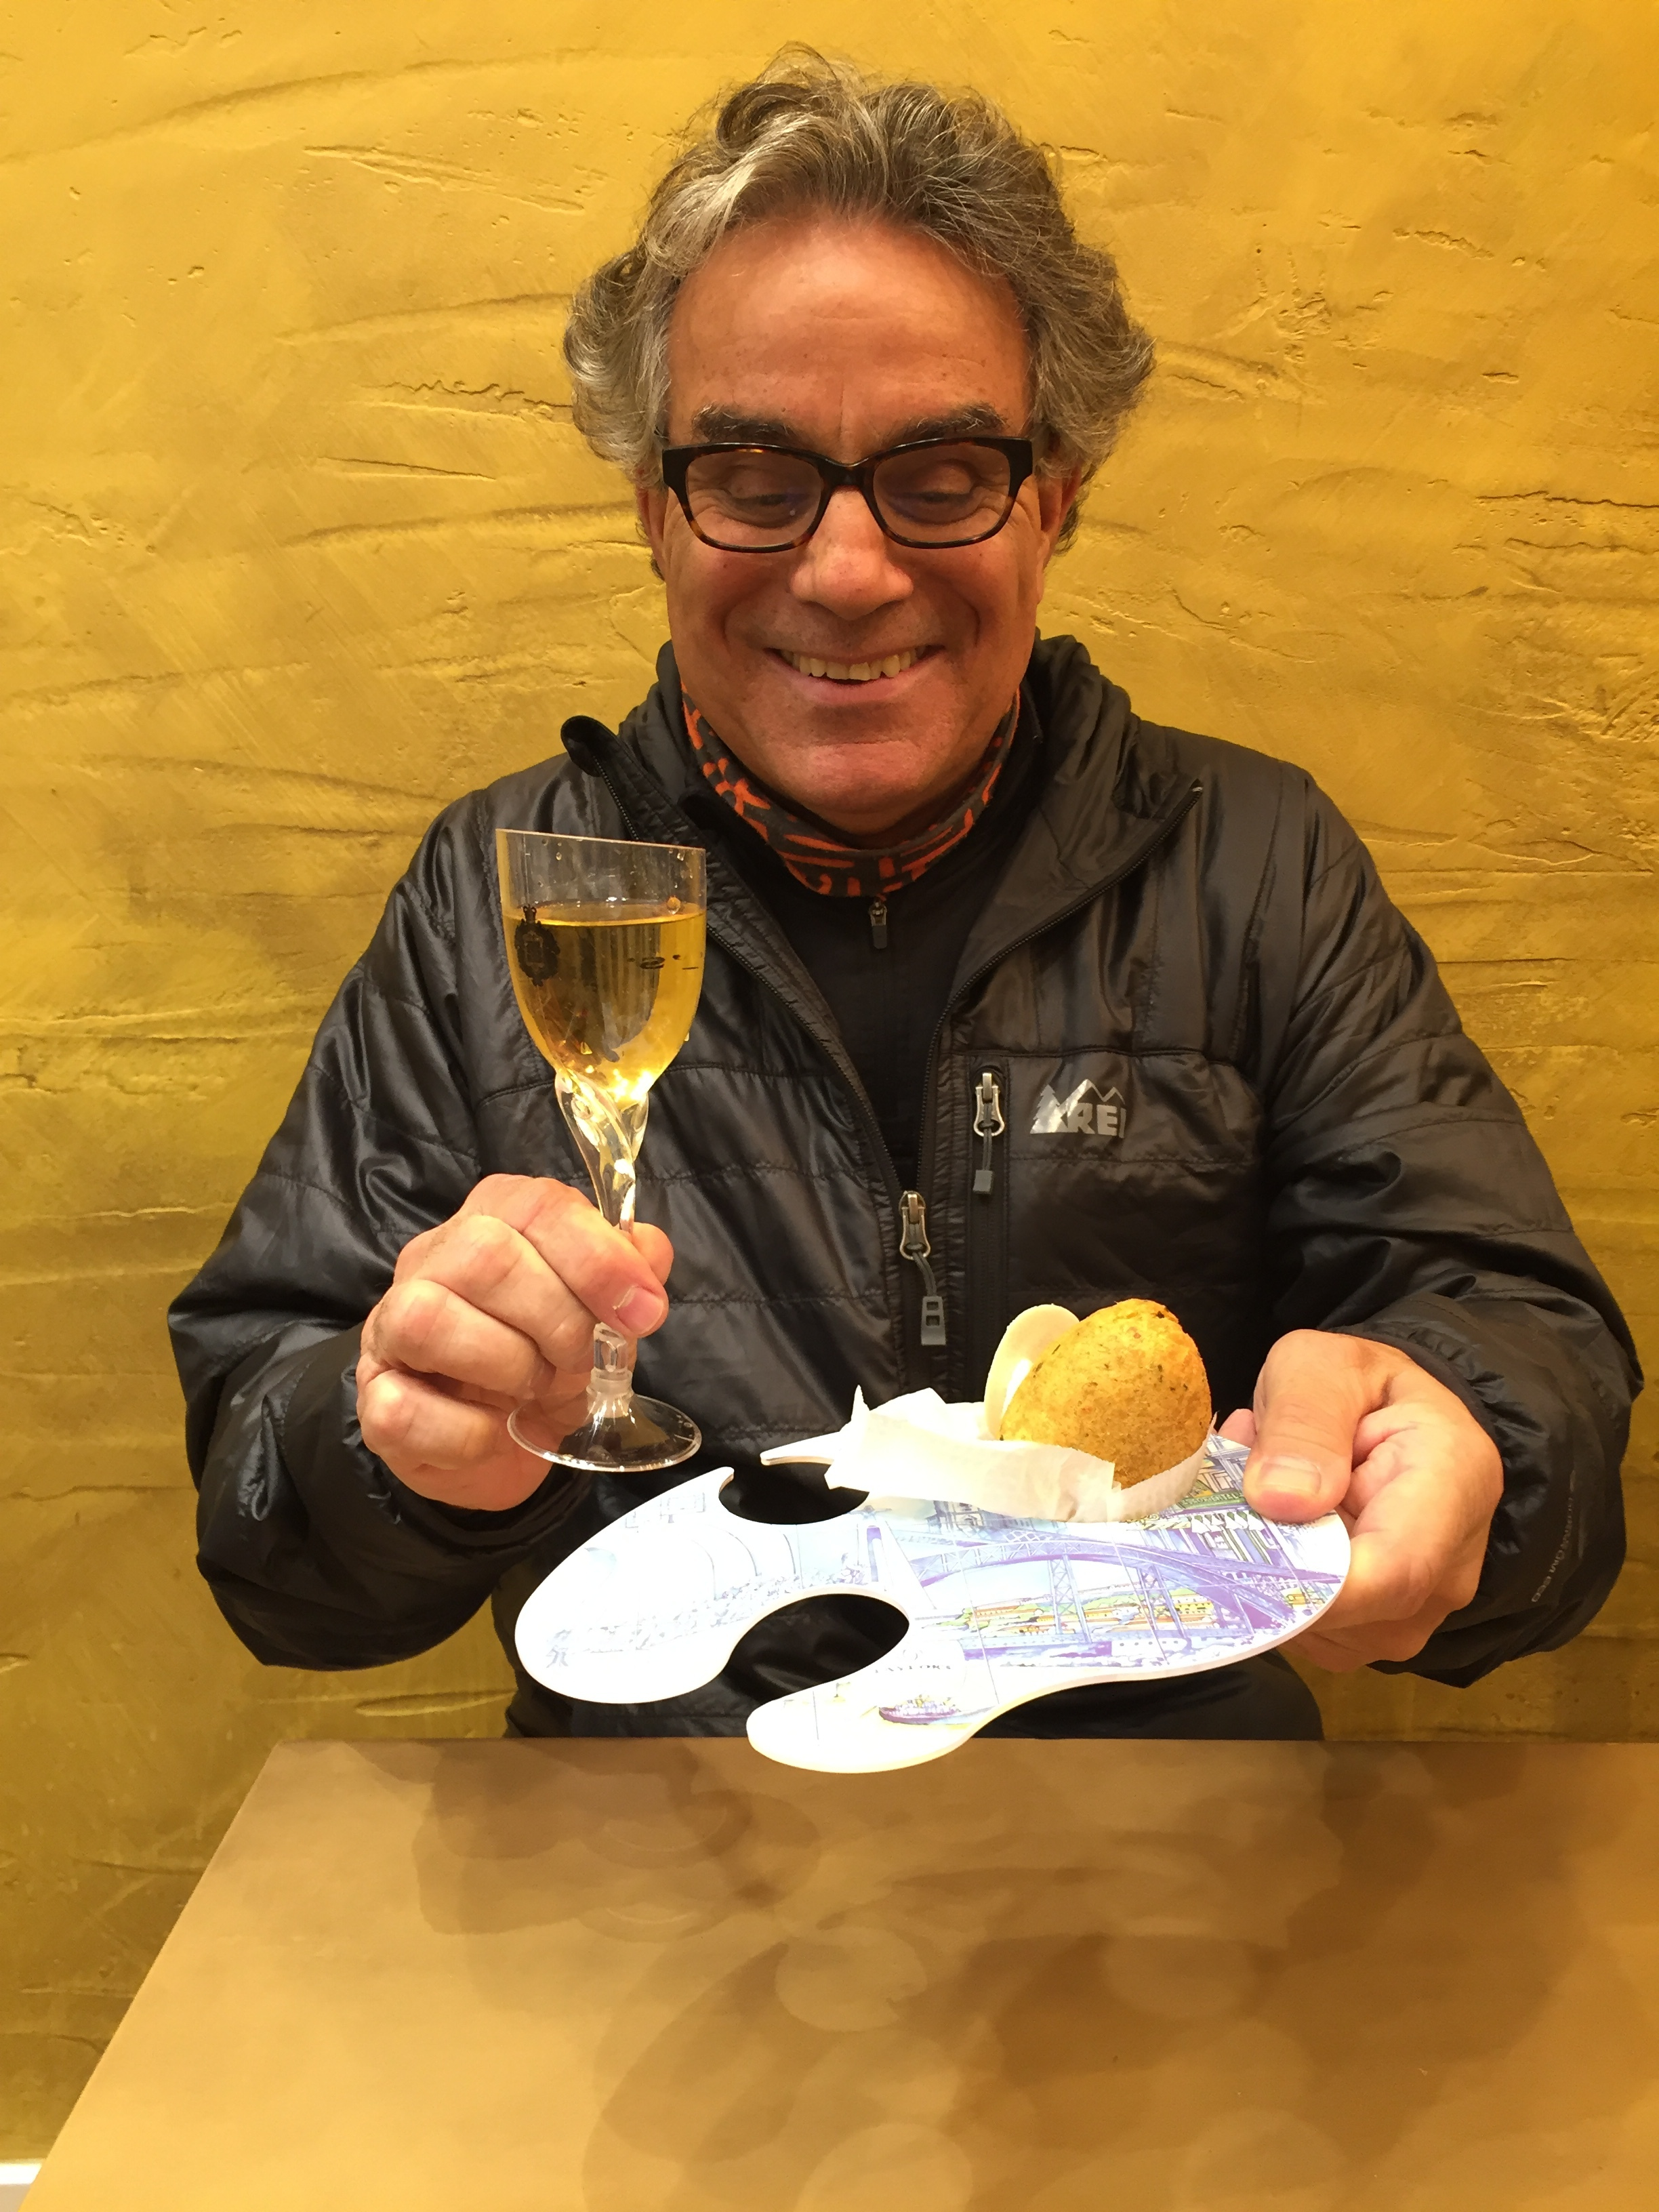 Frank with the cod fish balls and wine